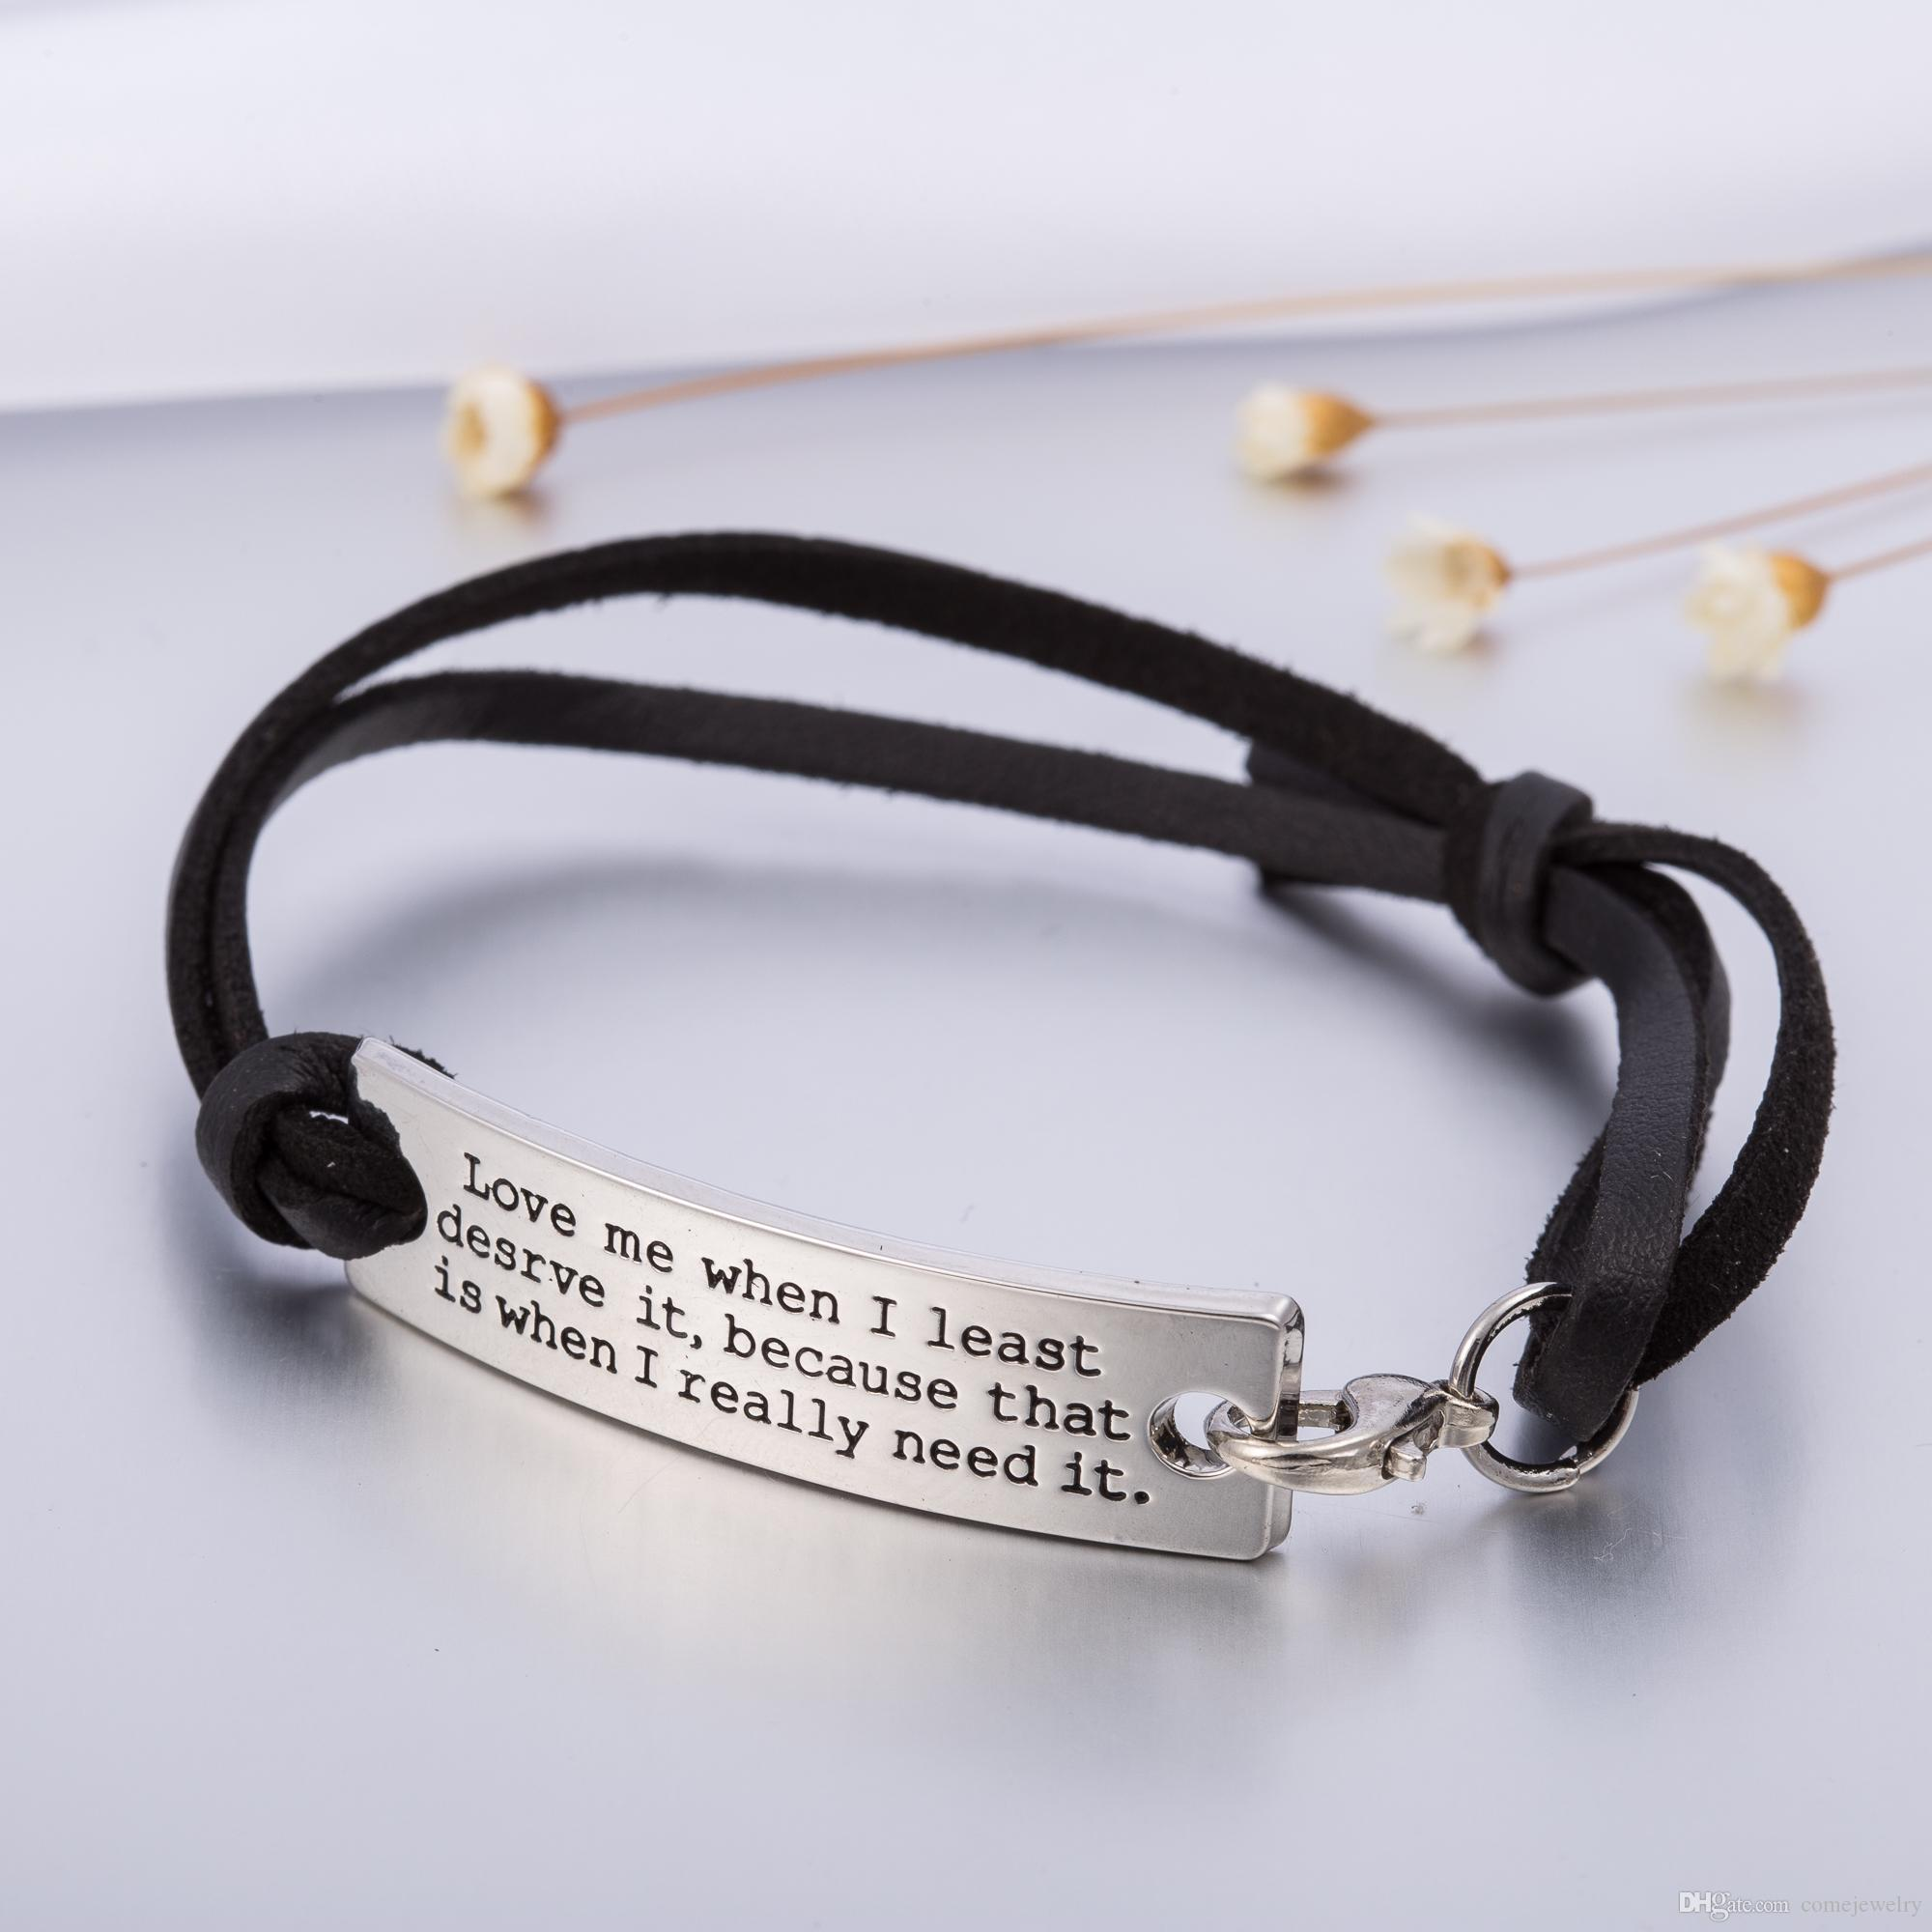 from inspirational bracelets shape do in can everything women jewelry amazing my graduation you message item are bracelet rock leather fashion charm